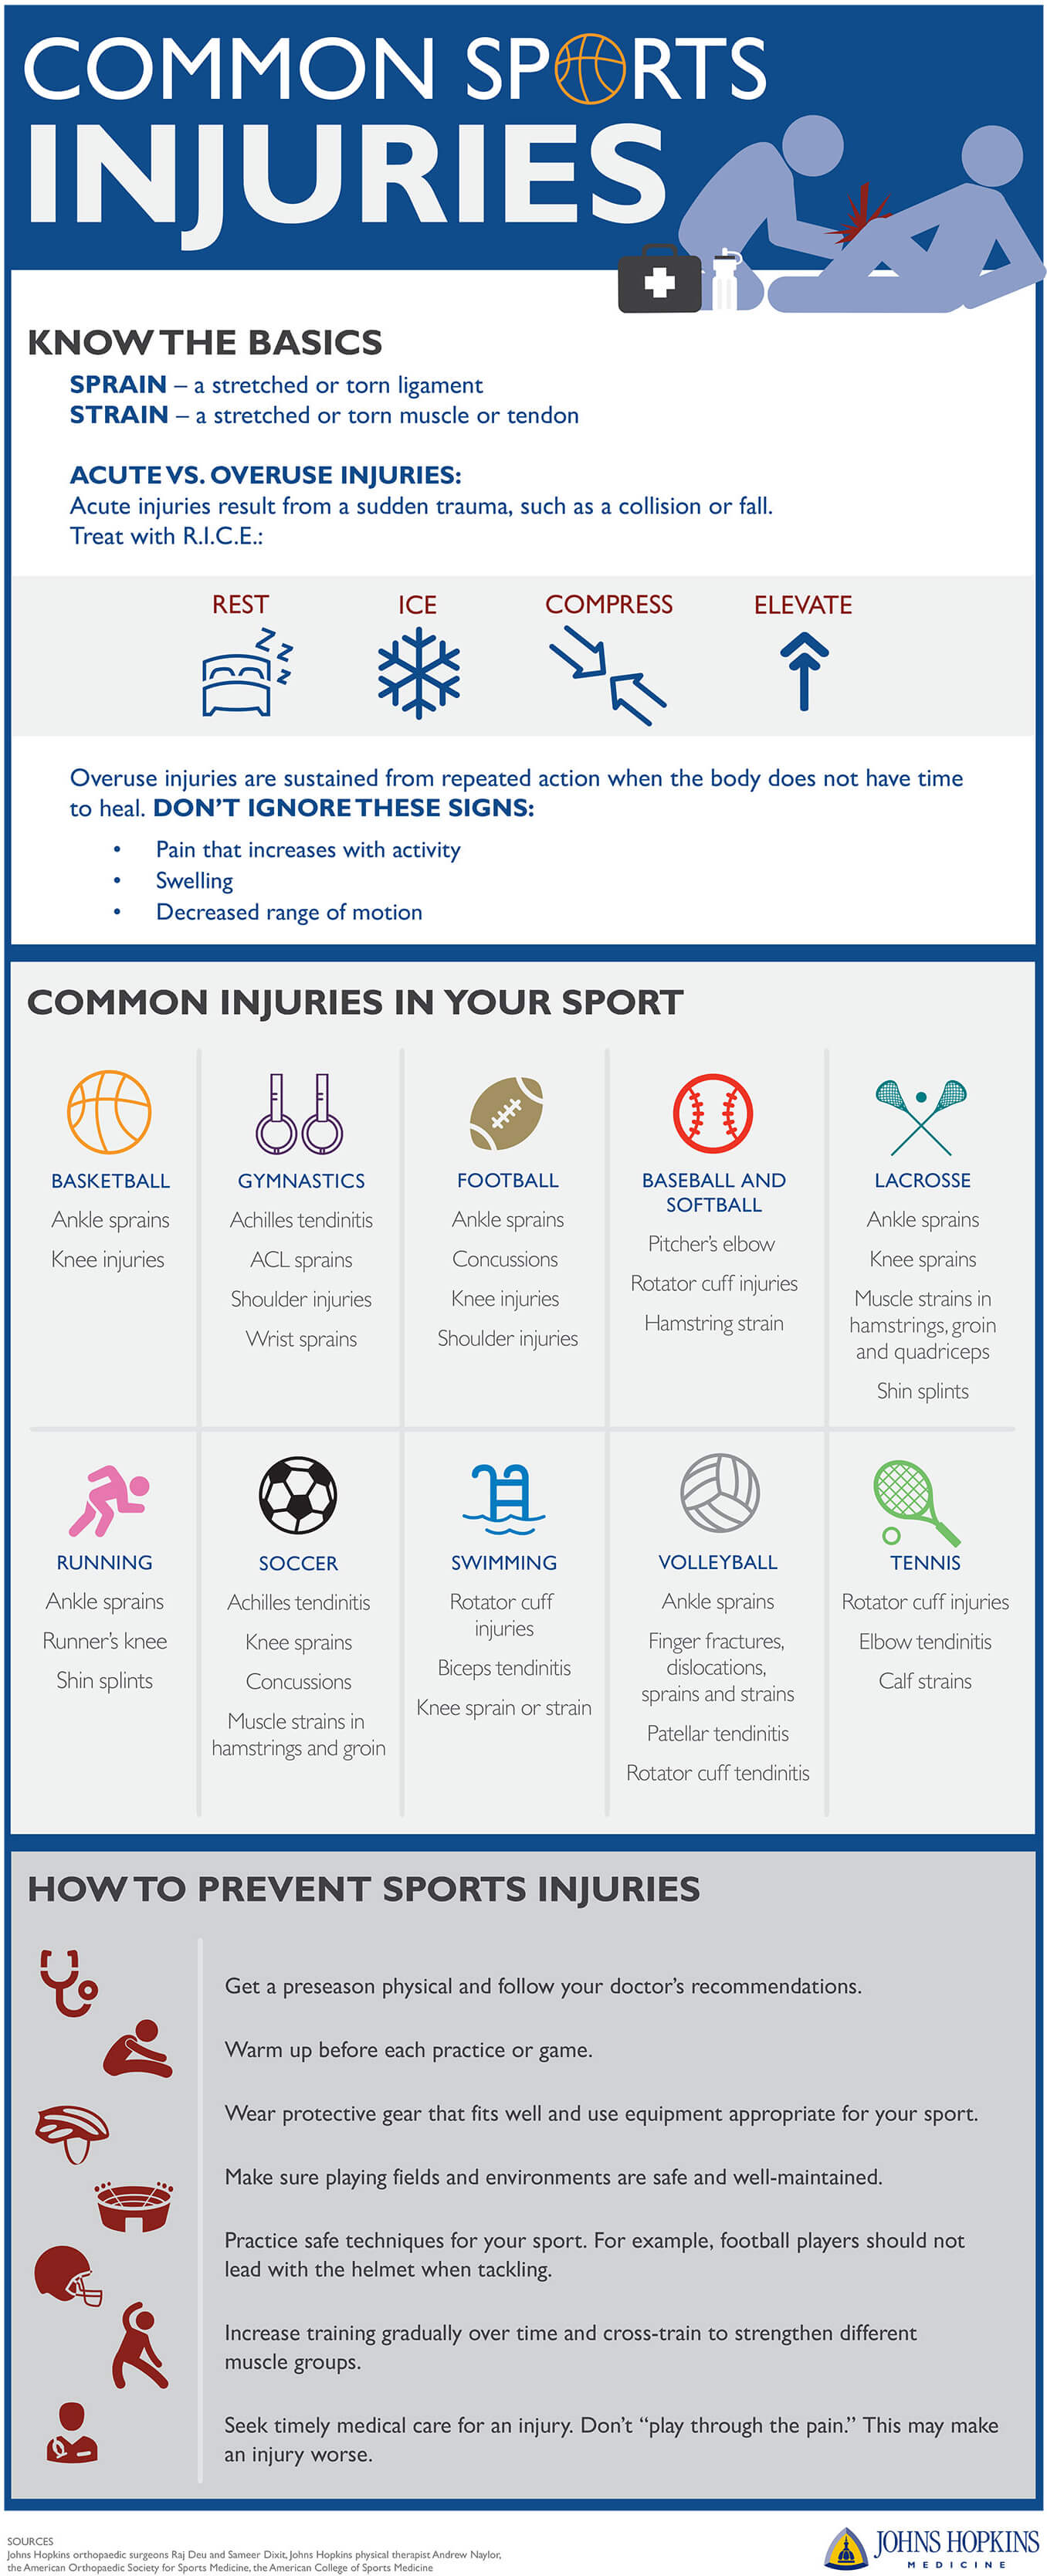 An infographic detailing how to treat and prevent common sports injuries.